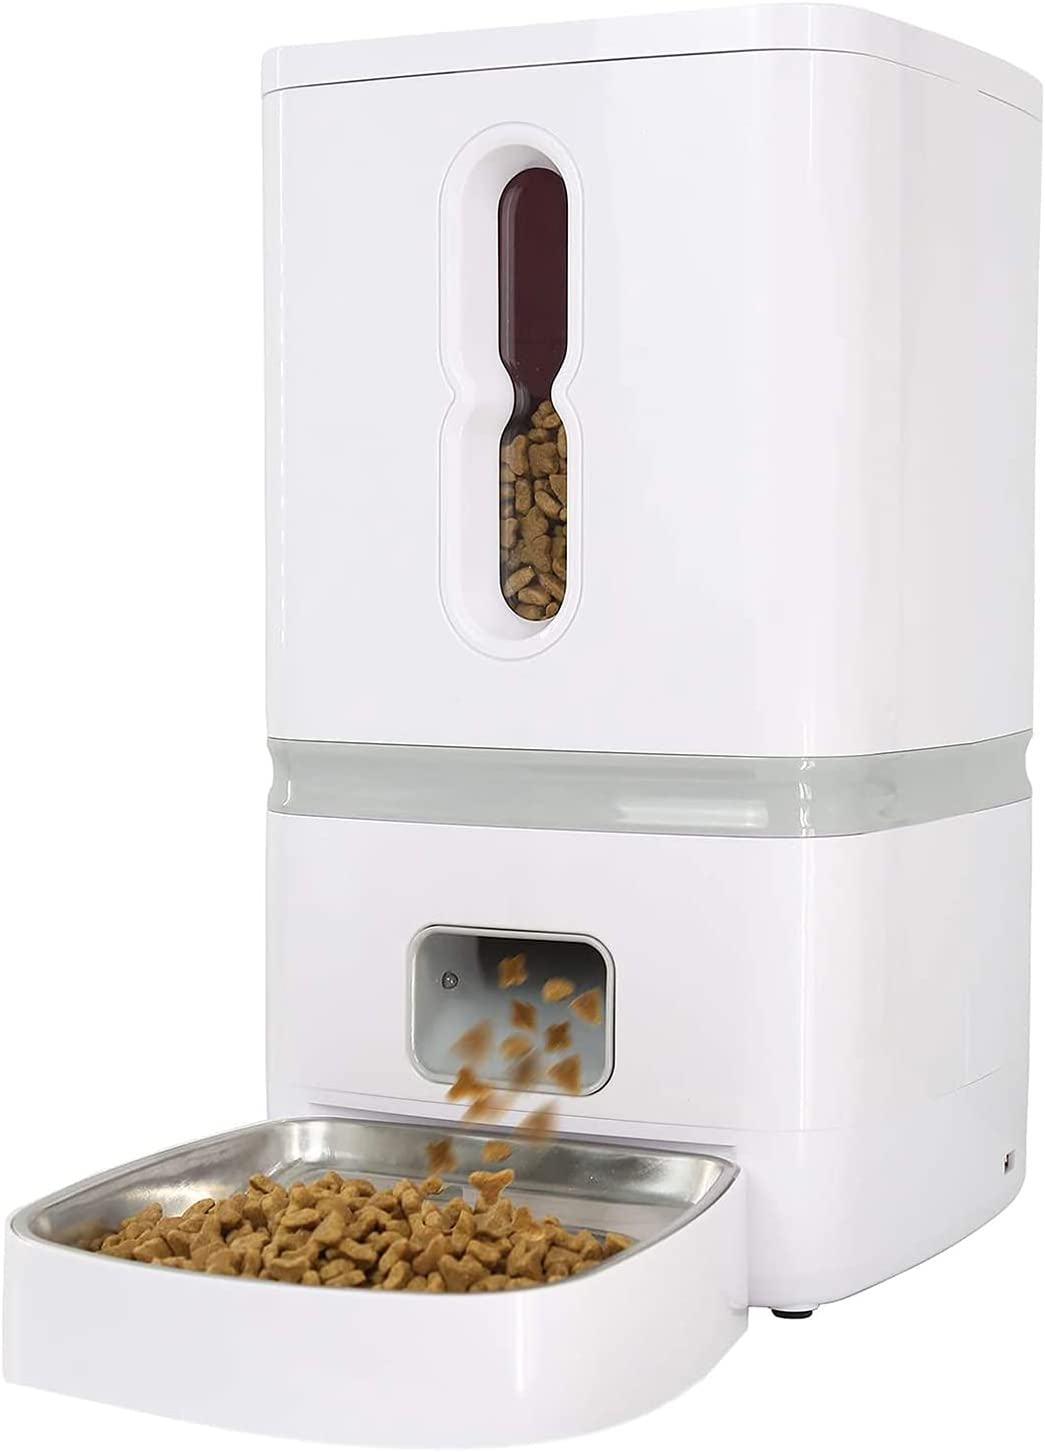 FIOVIEL Automatic Dog Feeder, 7L Pet Food Dispenser for Cats and Dogs, Cat and Dog Auto Timed Cat Feeder with 10s Voice Recorder, Up to 6 Meals with Portion Control, for Small Medium and Large Pets